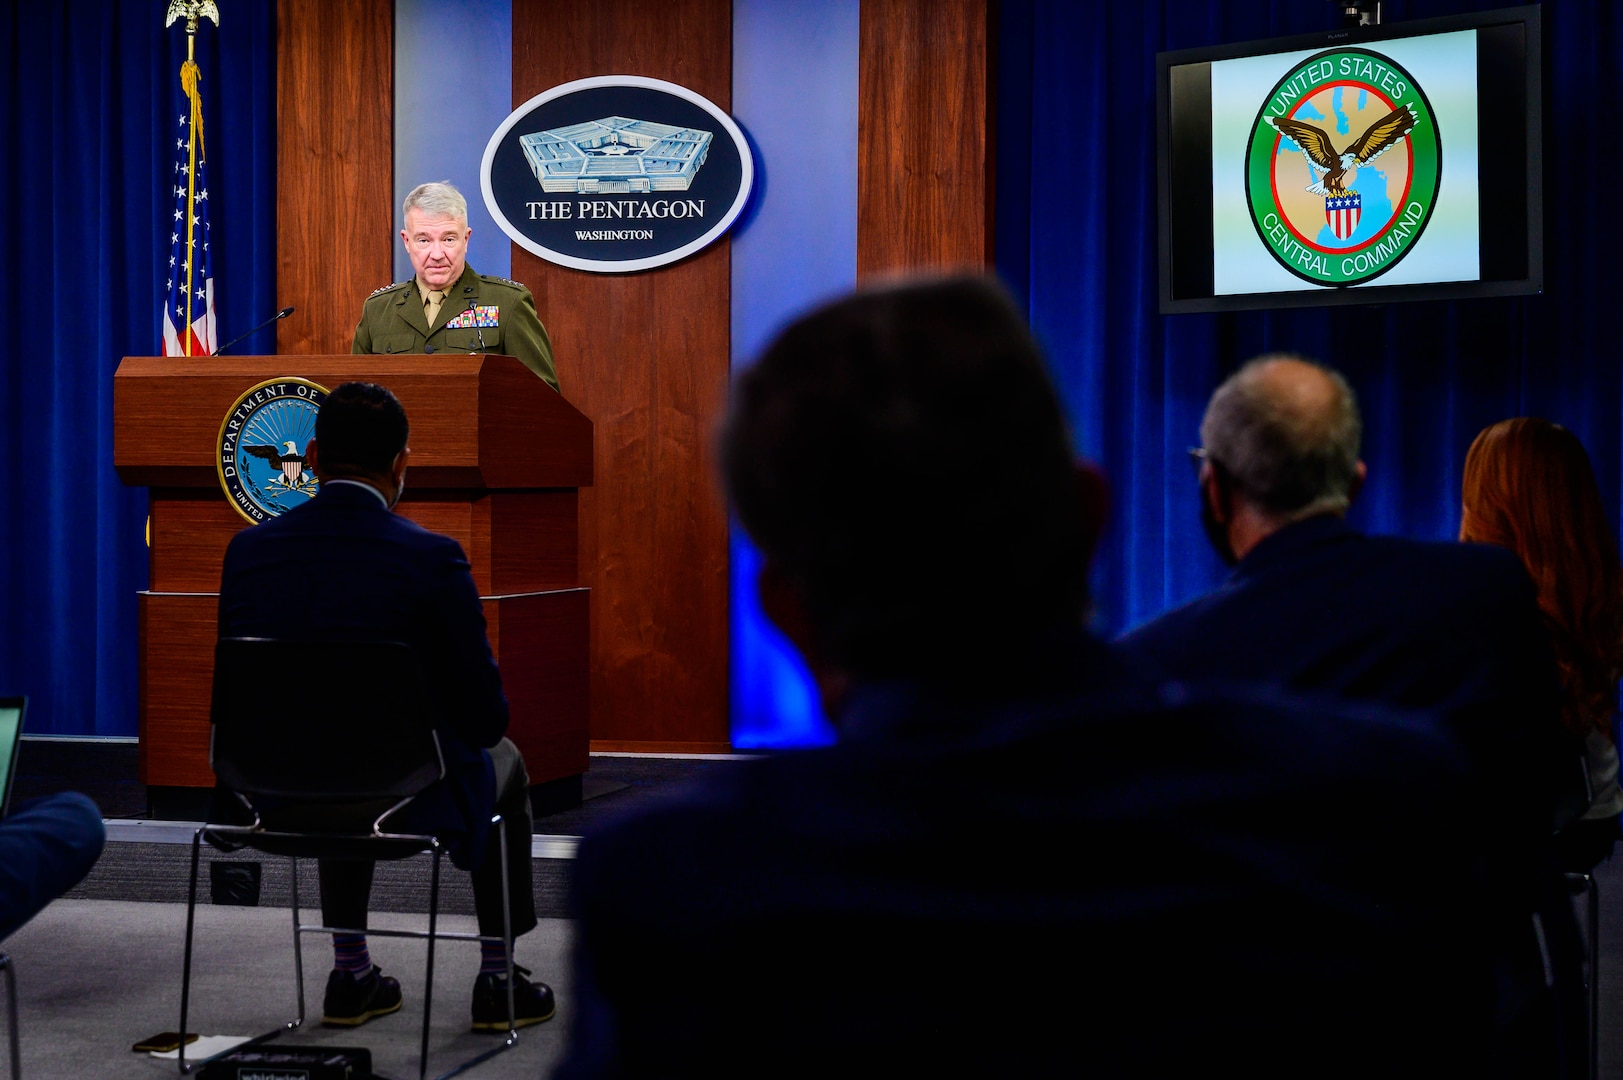 A man in a military dress uniform stands at a lectern. Behind him is a plaque indicating that he is at the Pentagon and seated reporters are silhouetted in the foreground.